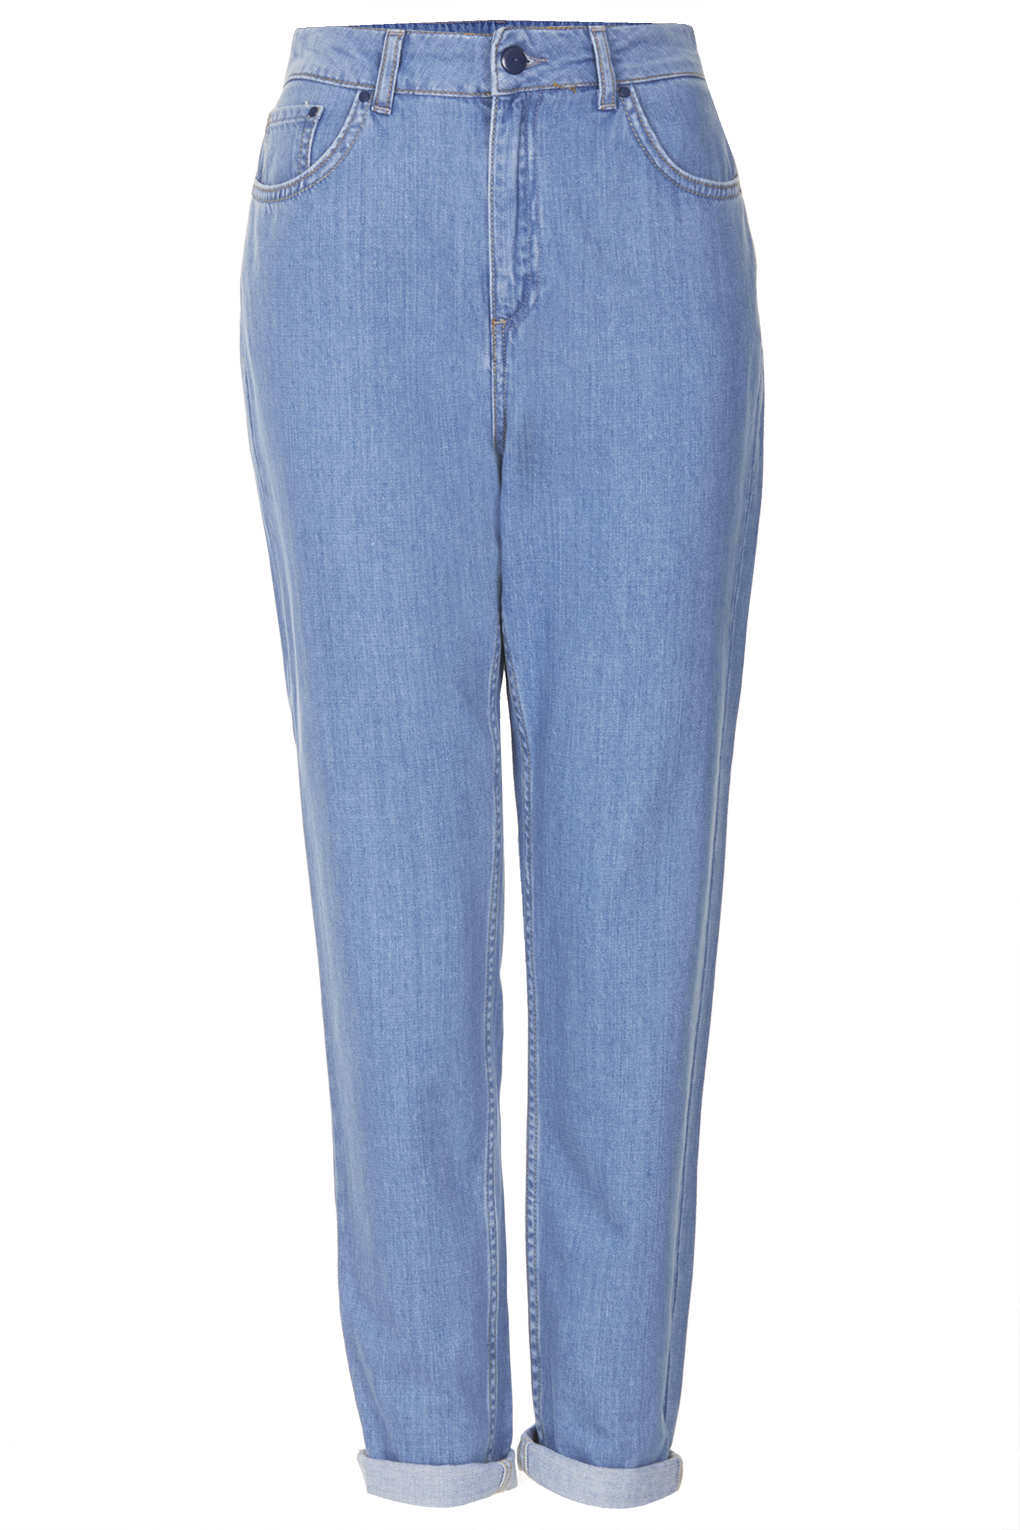 topshop bleach high waisted mom jeans in blue lyst. Black Bedroom Furniture Sets. Home Design Ideas